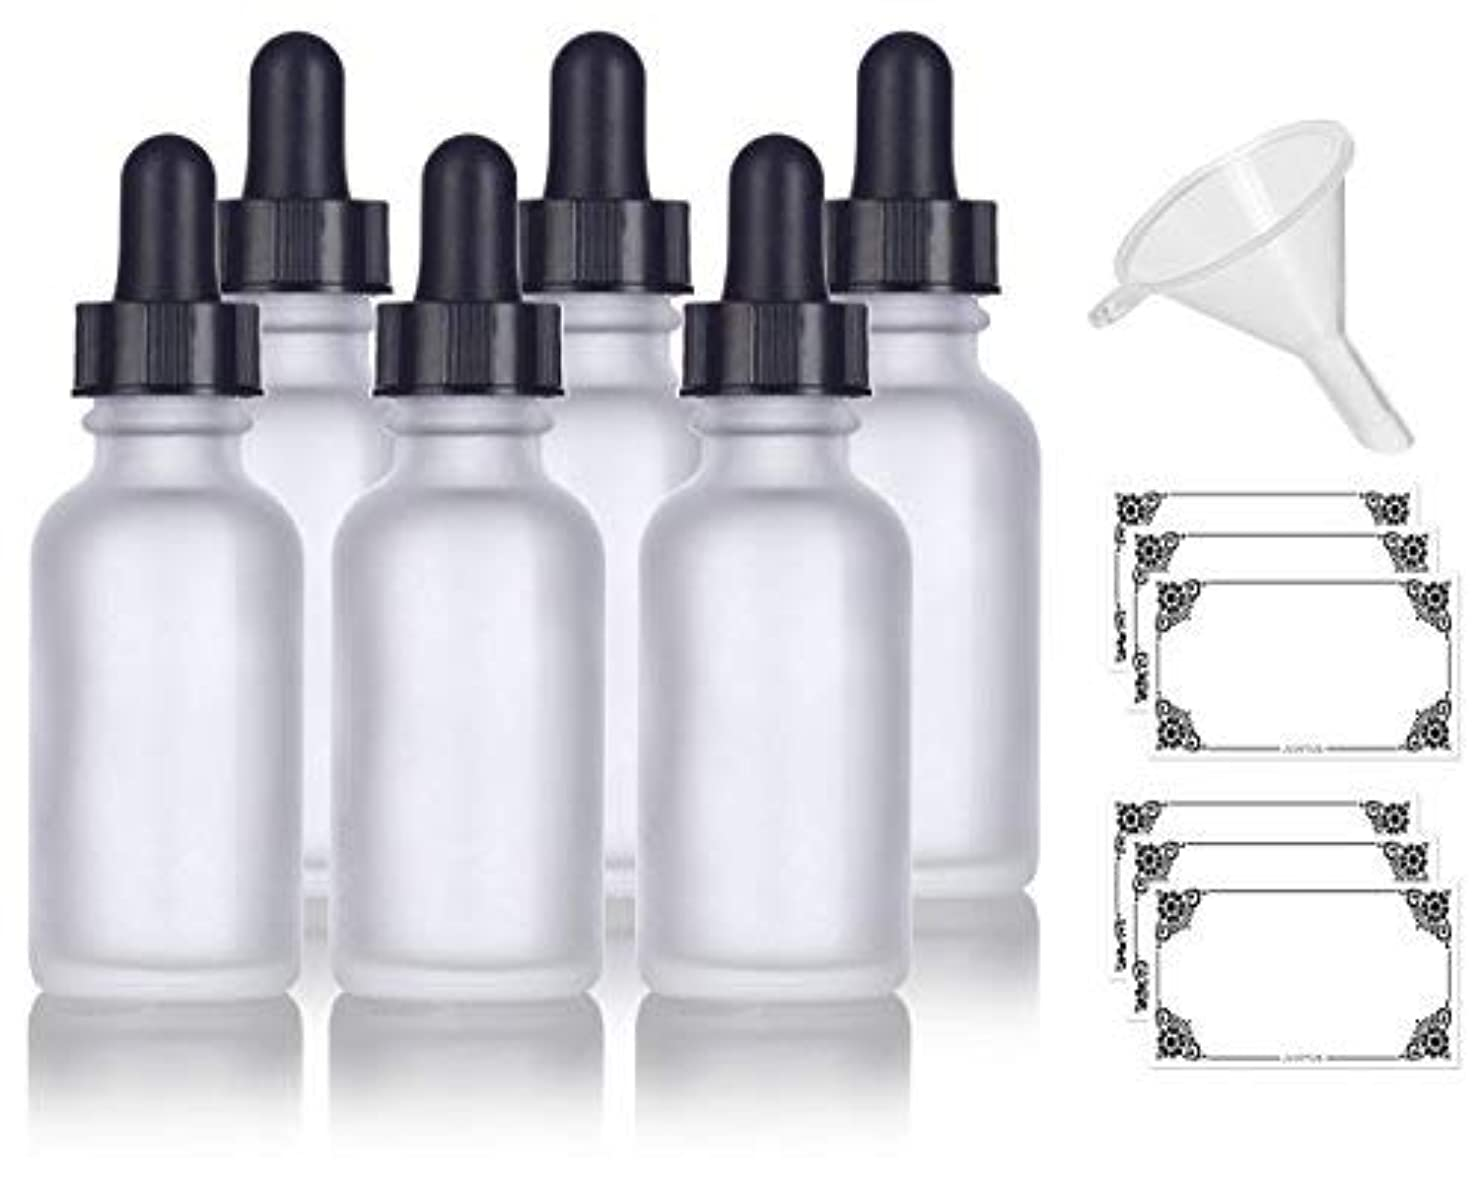 受け皿腐敗すぐに1 oz Frosted Clear Glass Boston Round Dropper Bottle (6 pack) + Funnel and Labels for cosmetics, serums, essential oils, aromatherapy, food grade, bpa free [並行輸入品]